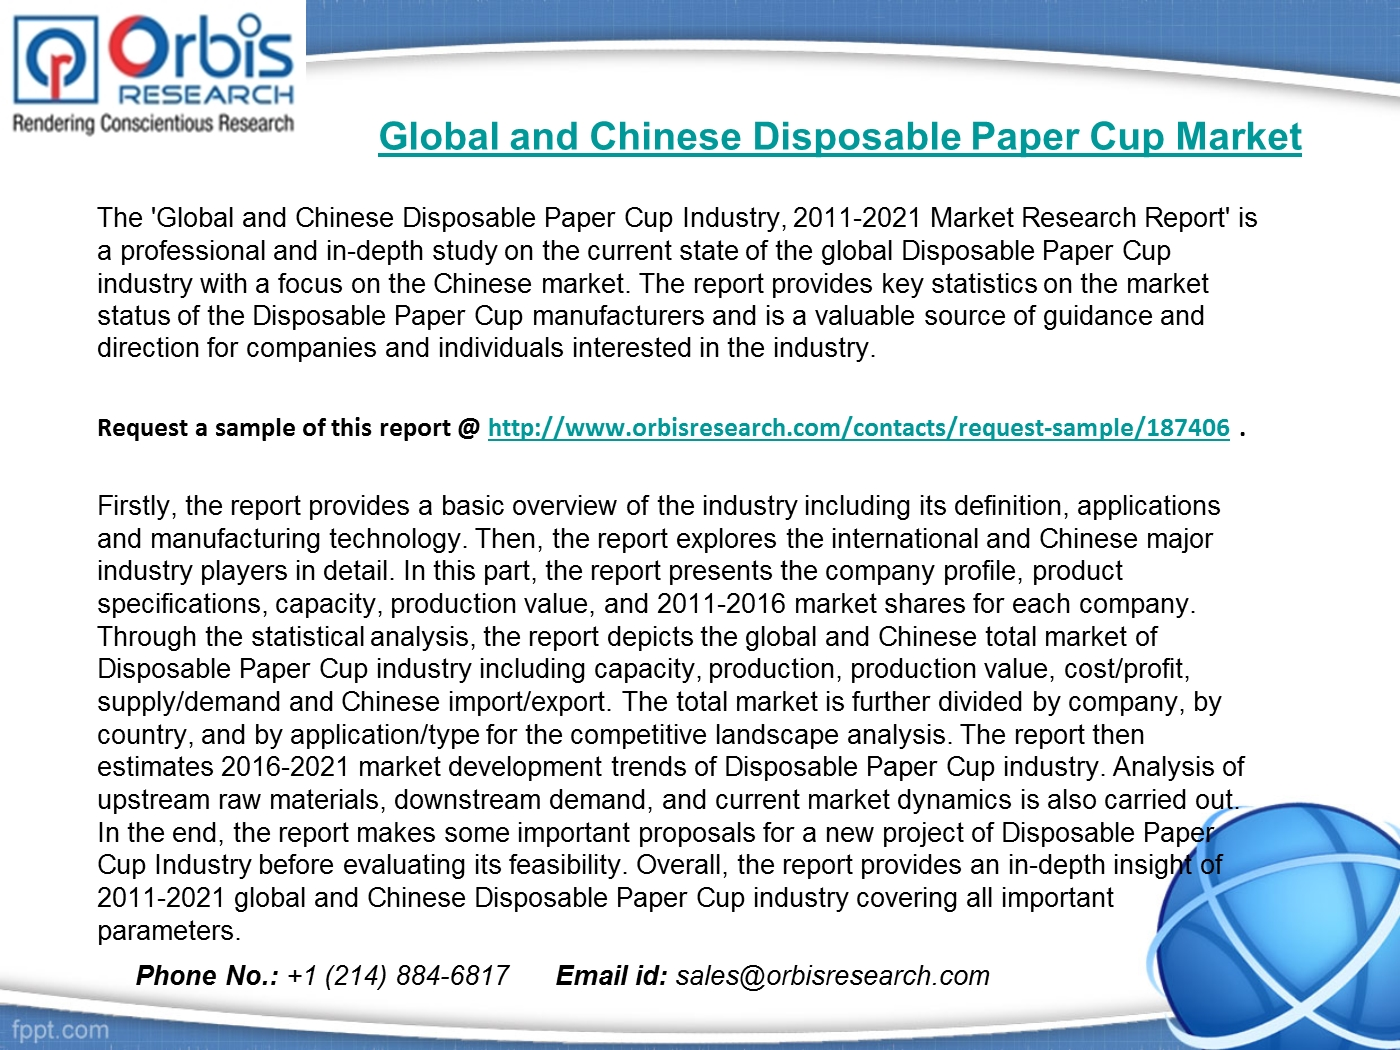 Global & Chinese Disposable Paper Cup Market 2016-2021